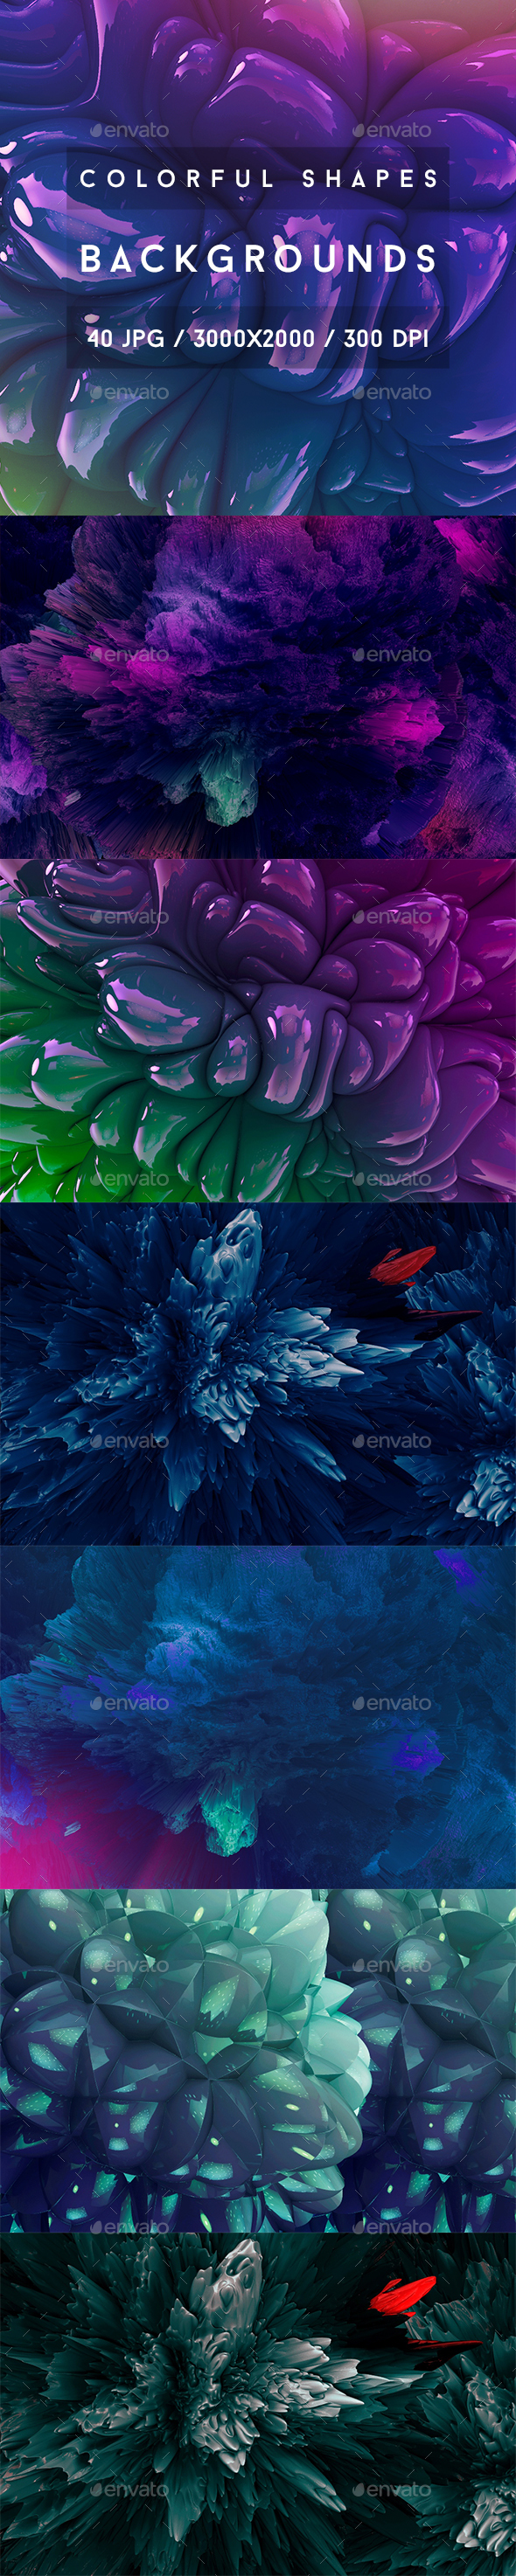 40 Colorful Shapes Backgrounds - Abstract Backgrounds